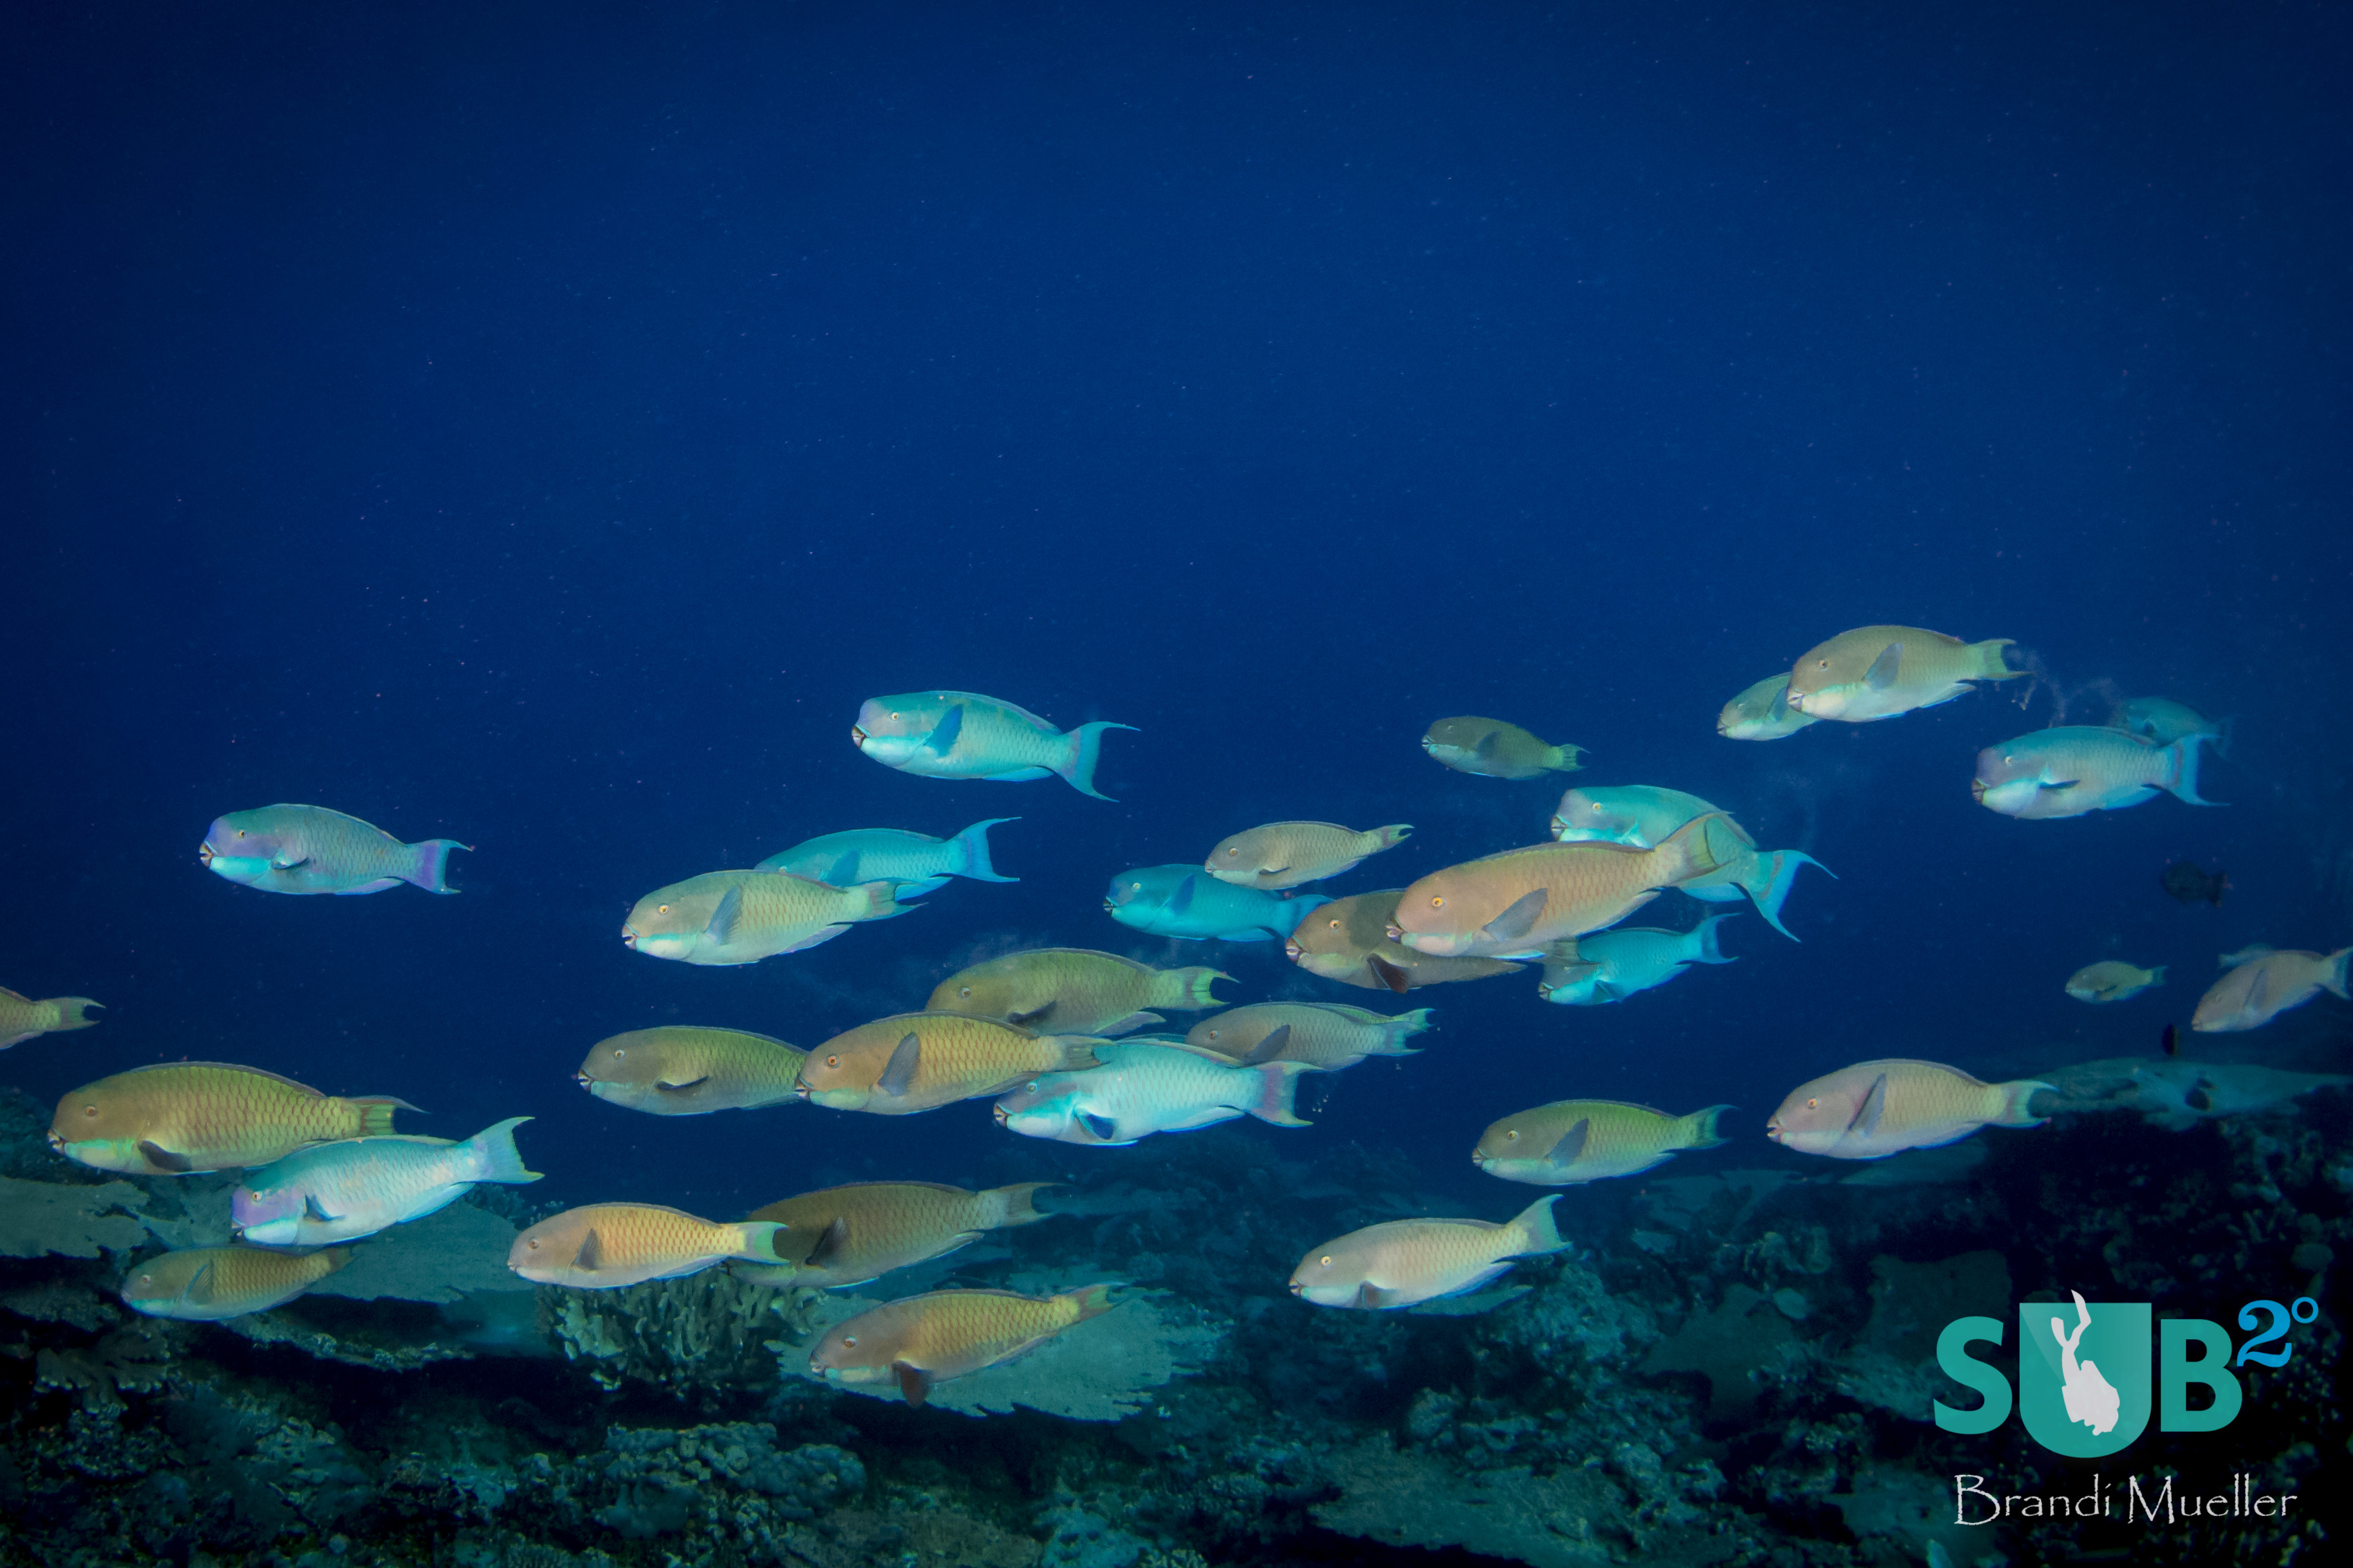 A large school of parrotfish swim over the reef, occasionally stopping to munch on some coral.